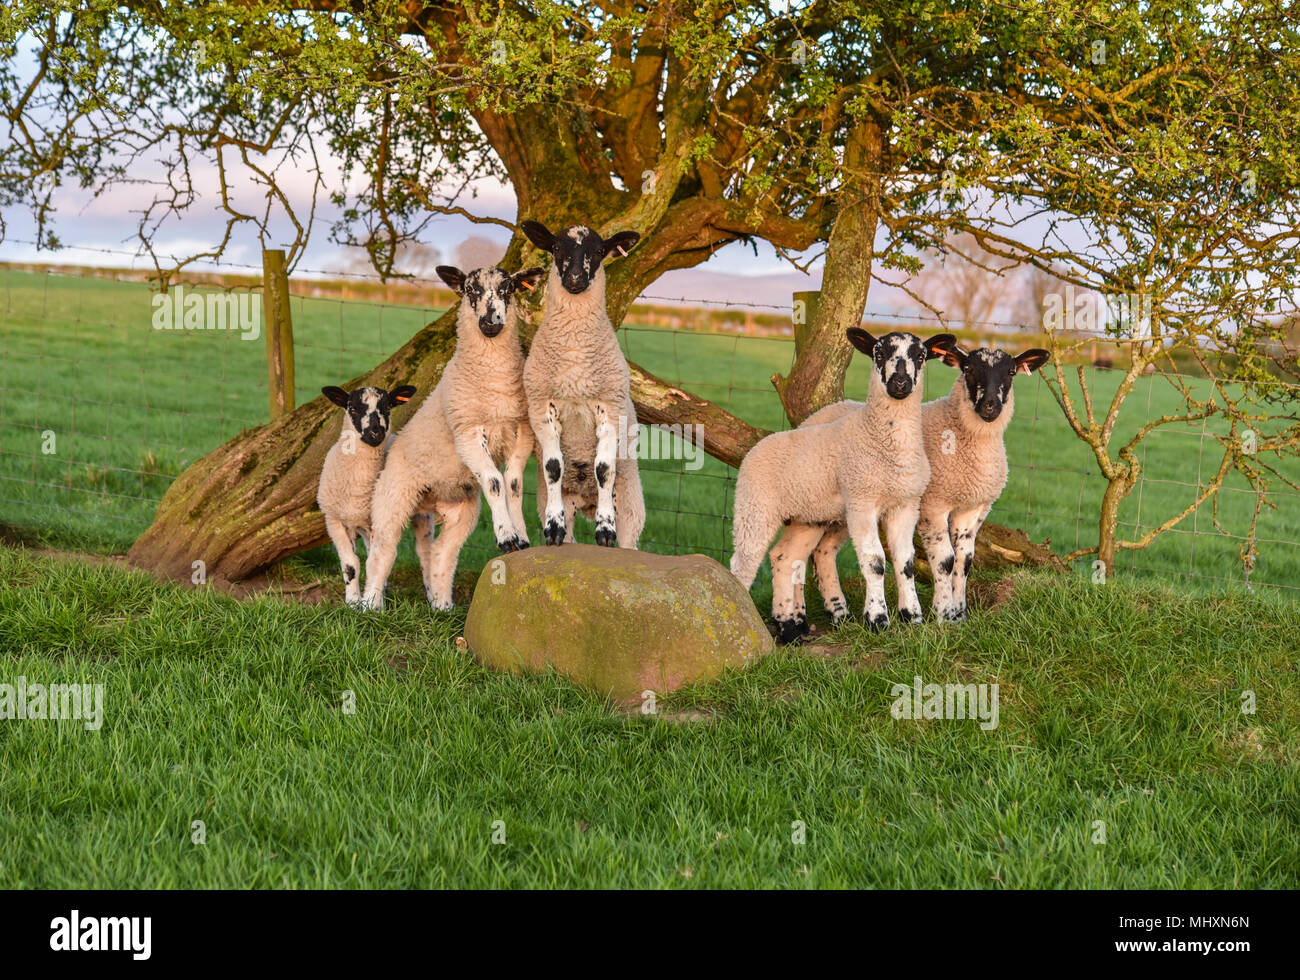 North of England Mule lambs grazing in the Eden Valley, Cumbria. - Stock Image